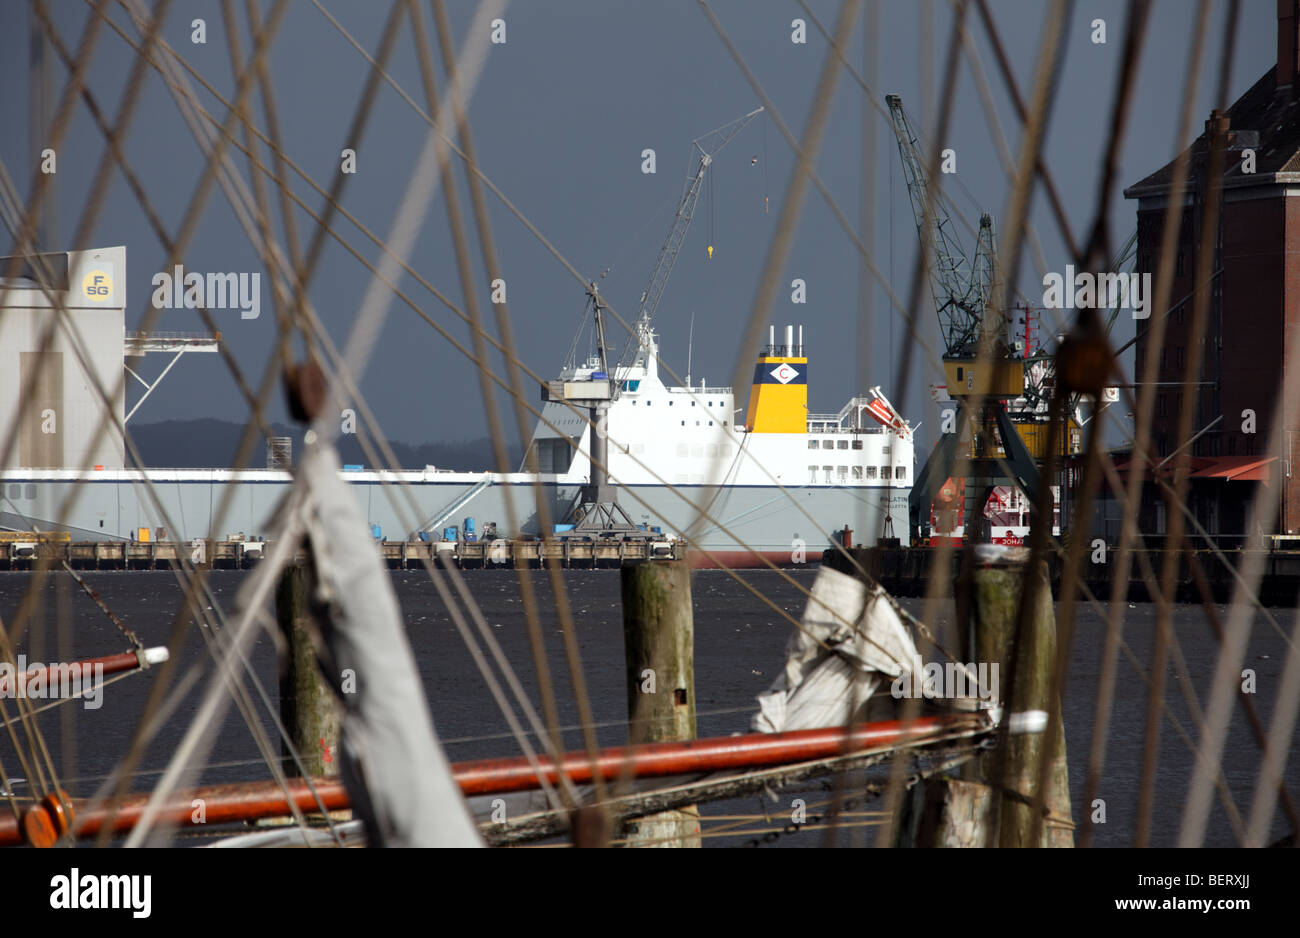 Brand-new container ship, built in 2009 by Flensburger Schiffbau-Gesellschaft for Cobelfret - Stock Image